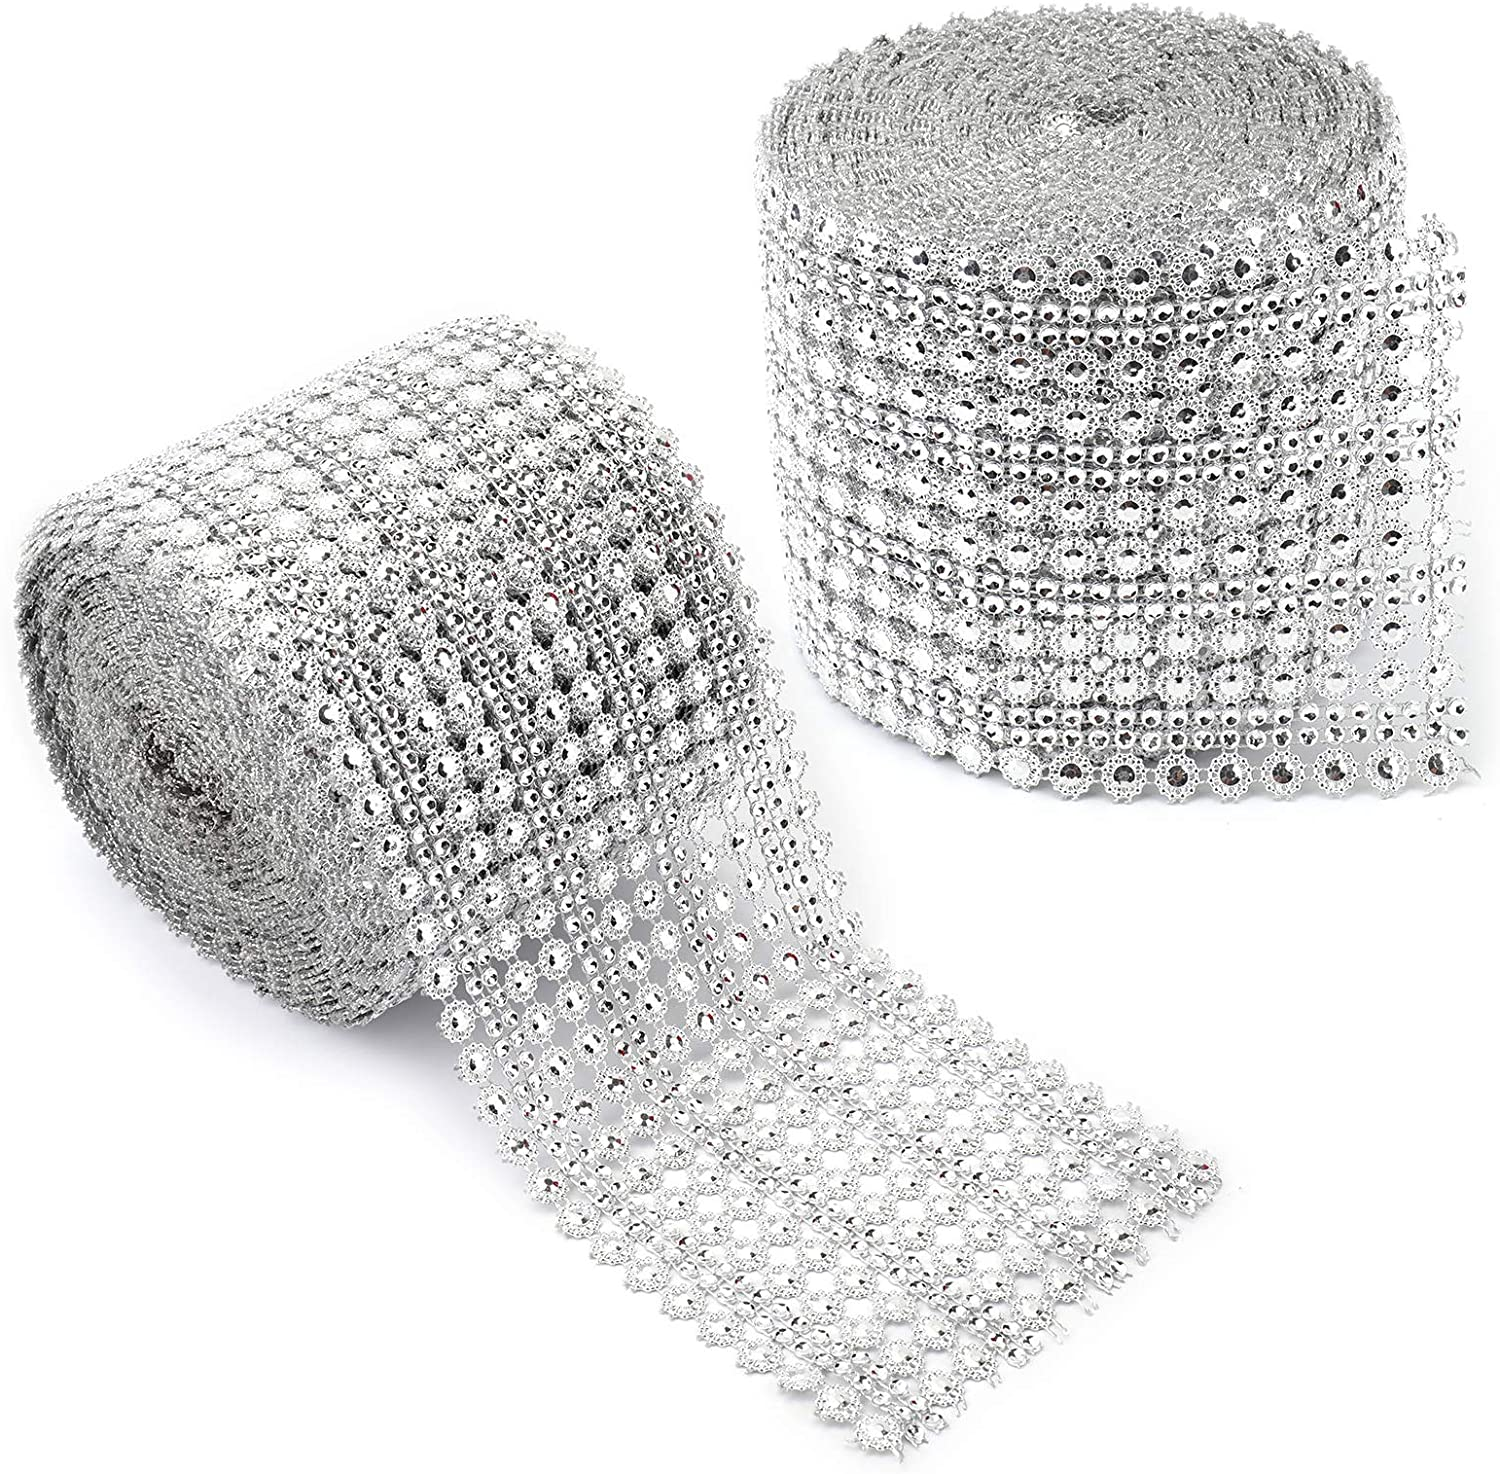 Foraineam Opening large release sale 2 Rolls Crystal Diamond Industry No. 1 20 Rhineston Yards Faux Ribbon